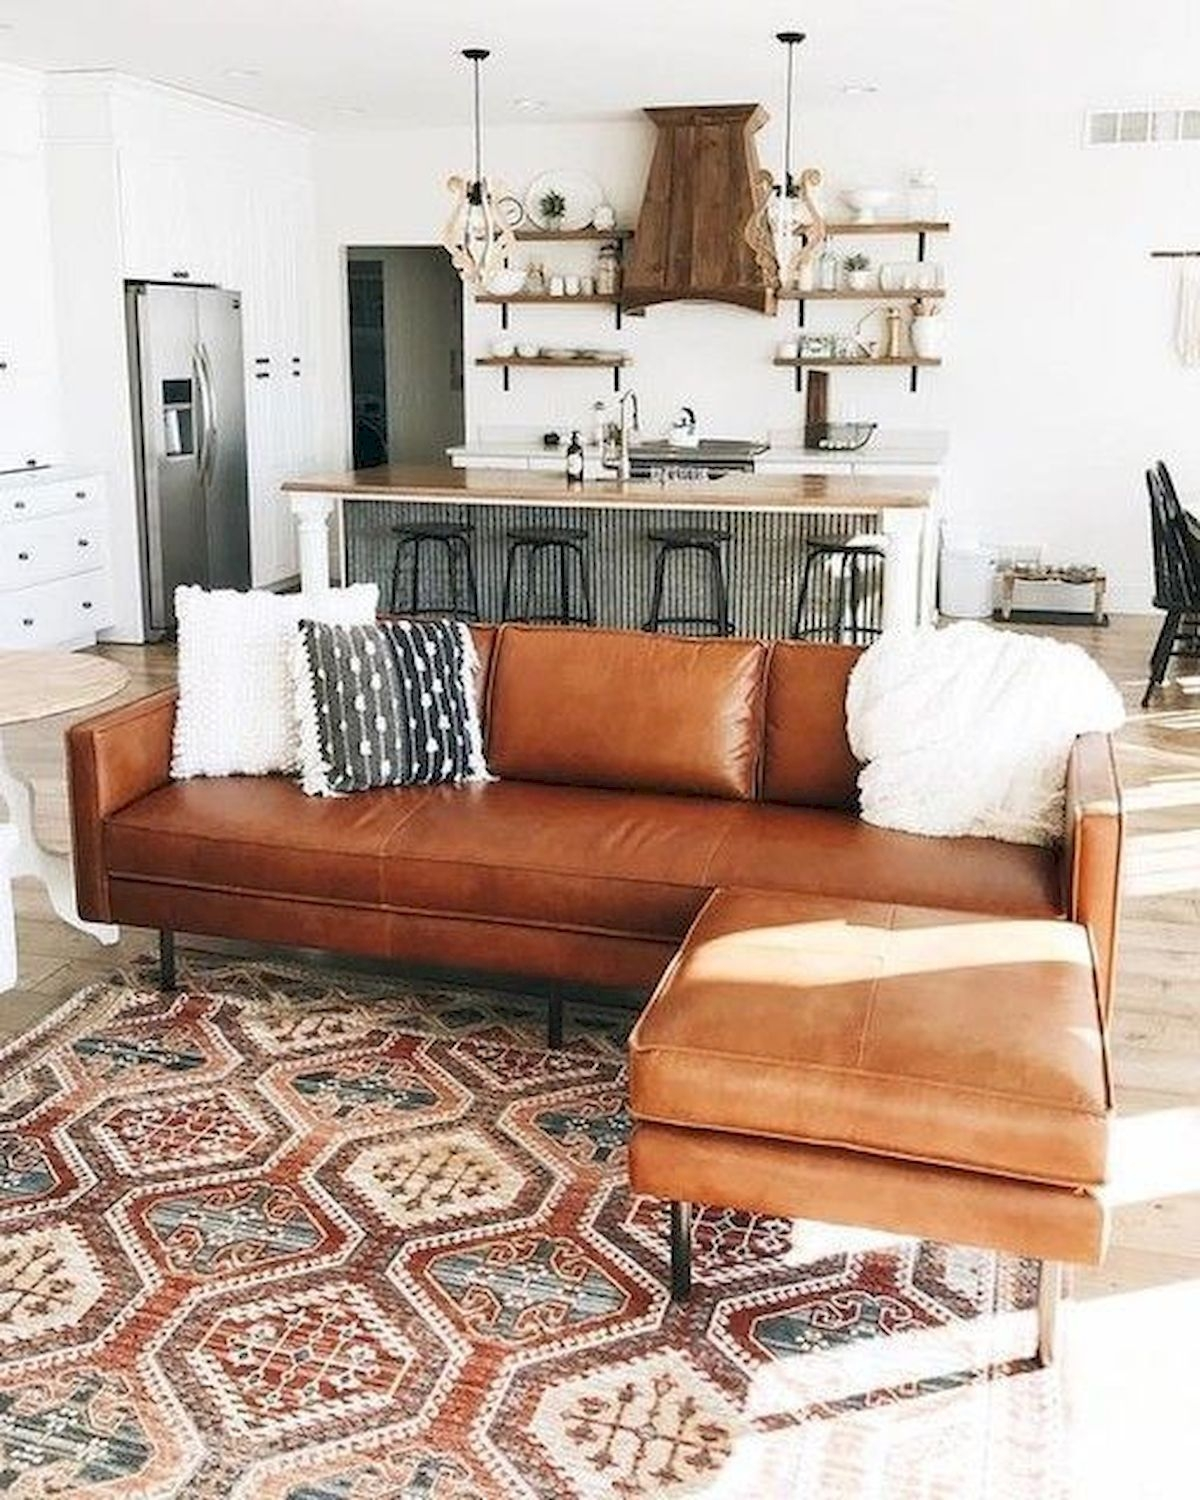 Engaging Boho Living Room Decor On A Budget Ideas Spaces Living Room Chairs On Stunning 33 Amazing Small Apartment Decorating Ideas On A Bud On Boho Living Room Decor On A Budget Ideas Spaces Living Room Chairs